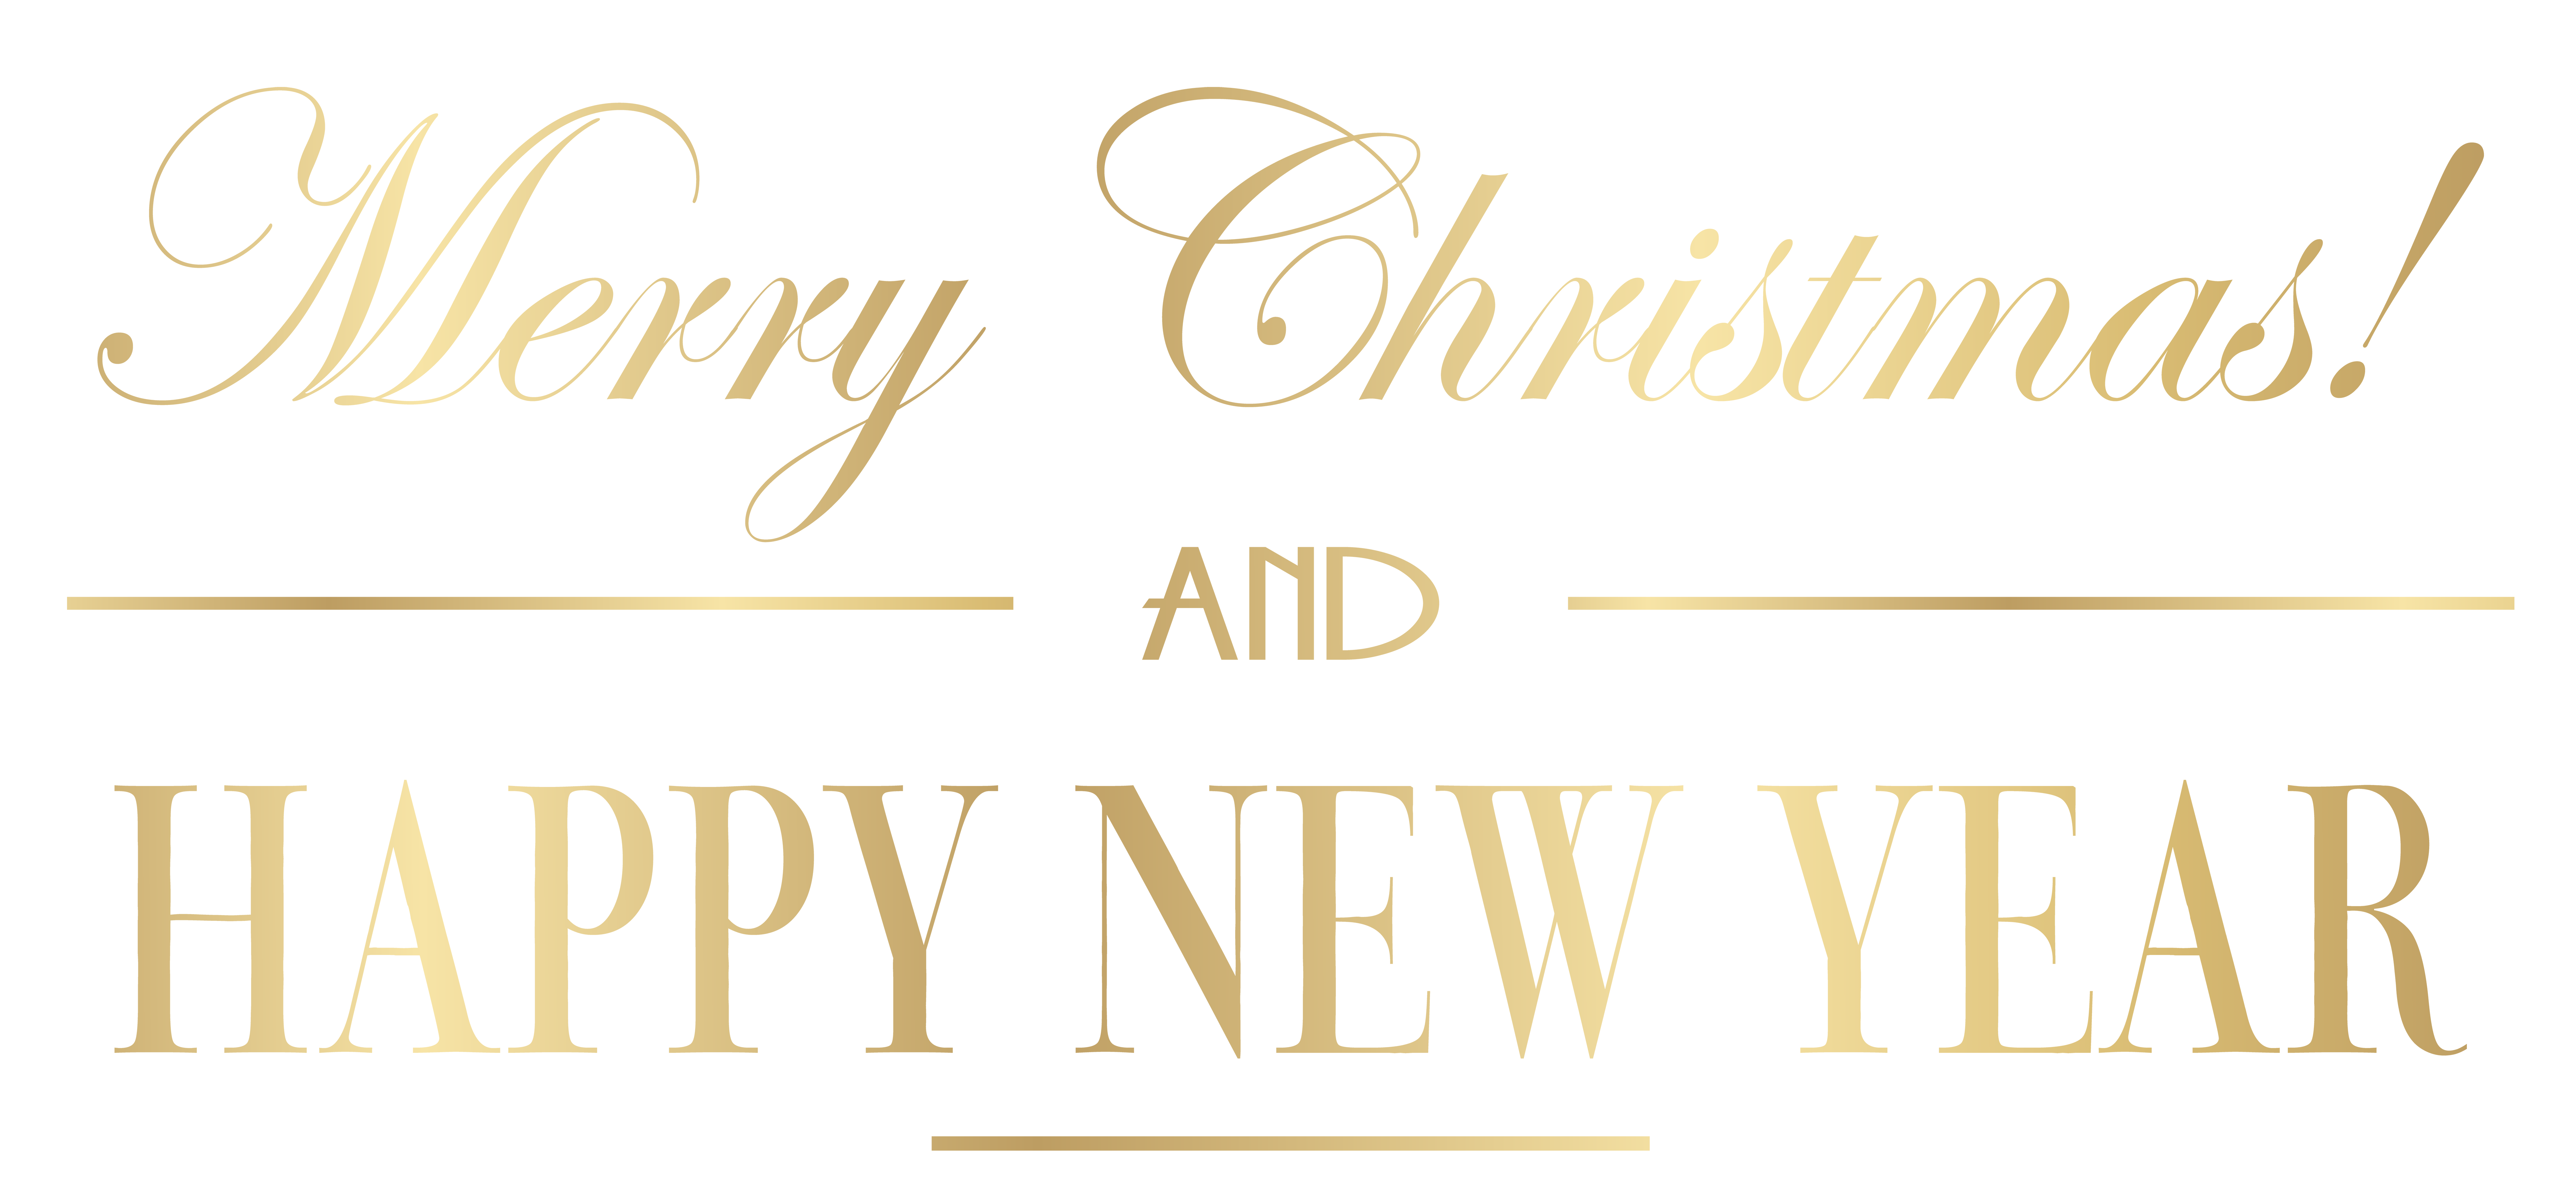 Merry christmas and happy new year clipart free vector black and white library Merry Christmas and Happy New Year PNG Clip Art Image | Gallery ... vector black and white library